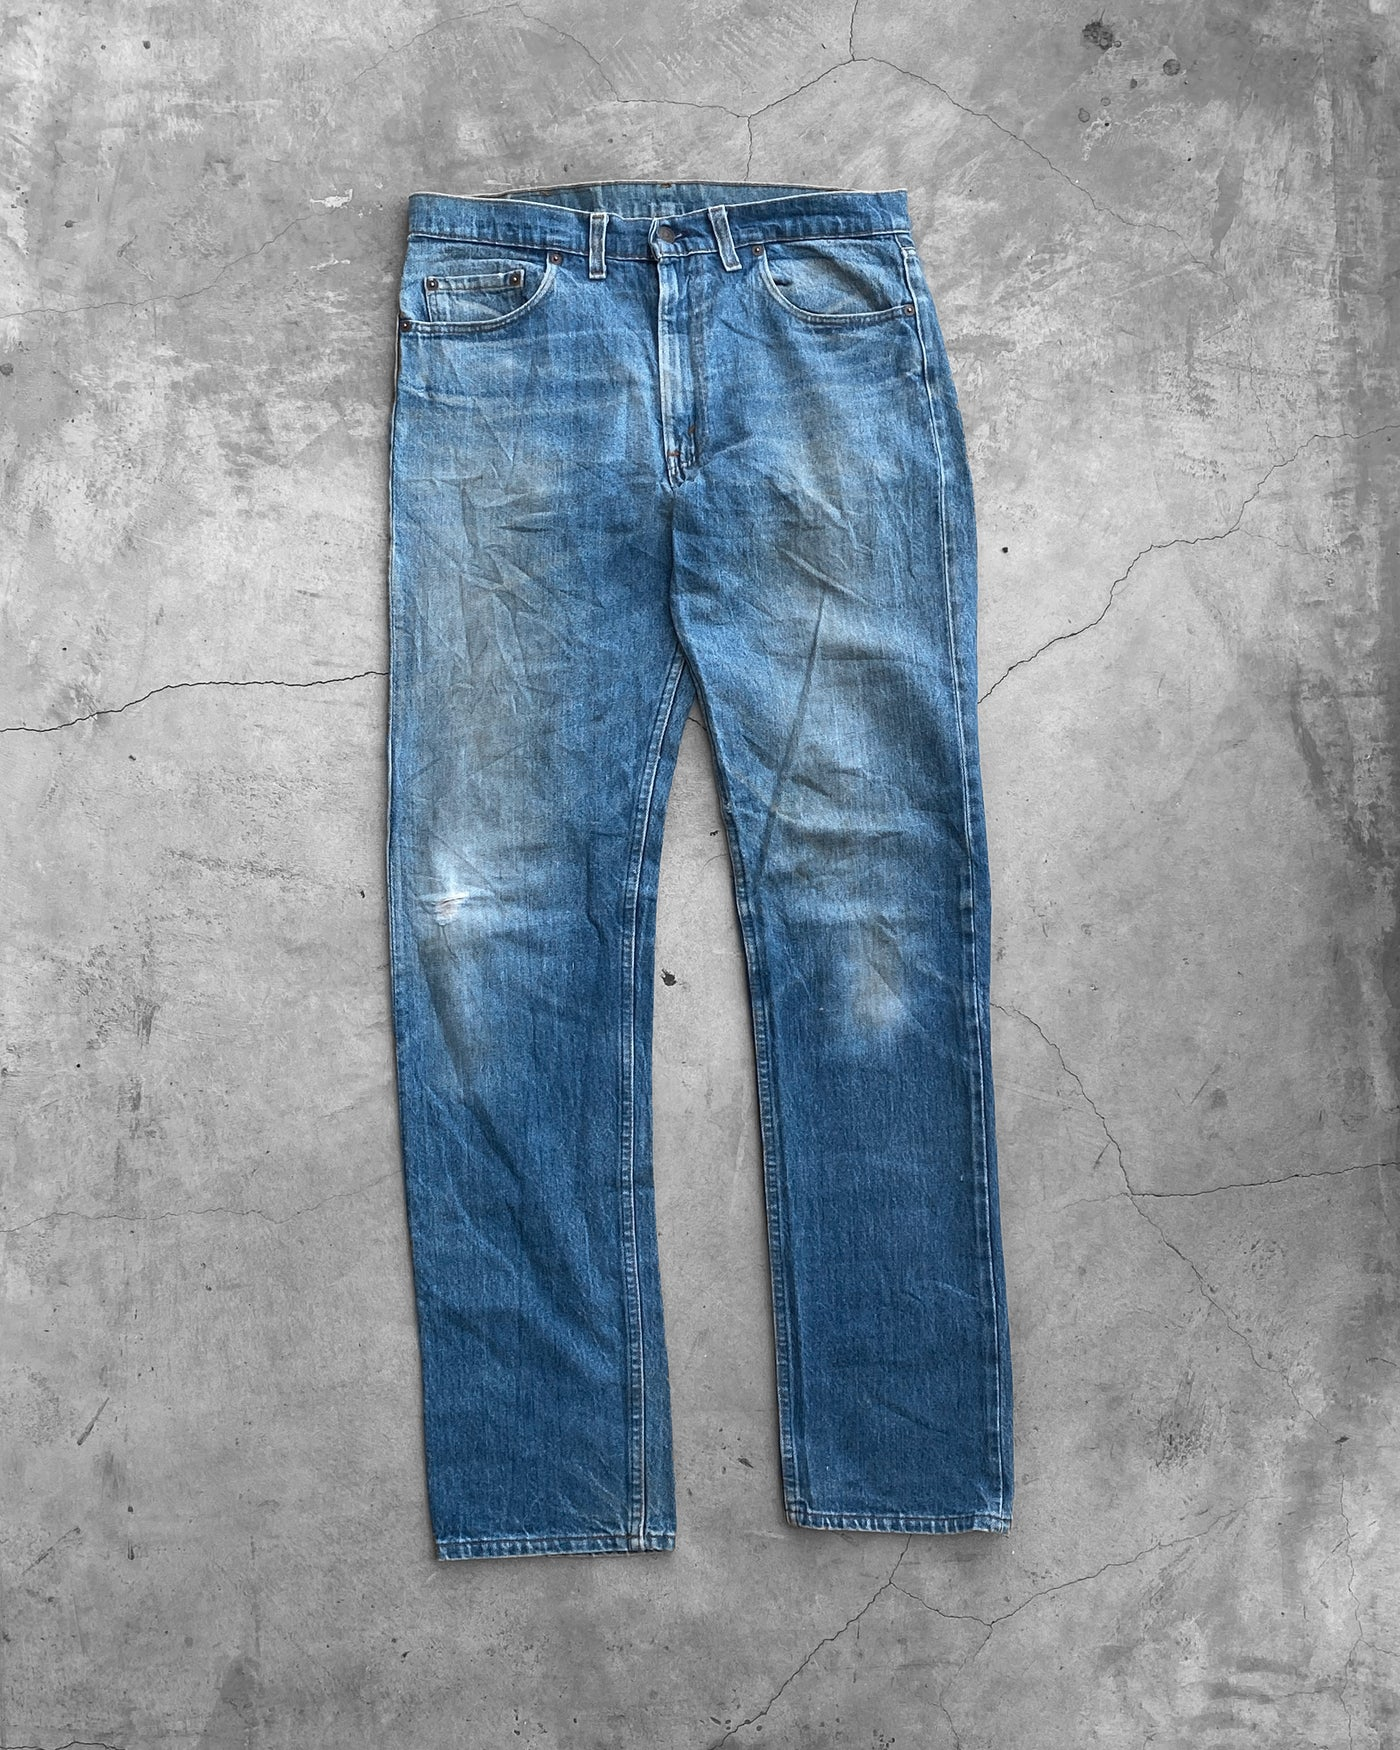 Levi's 505 Mud Wash Jeans  - 1980s